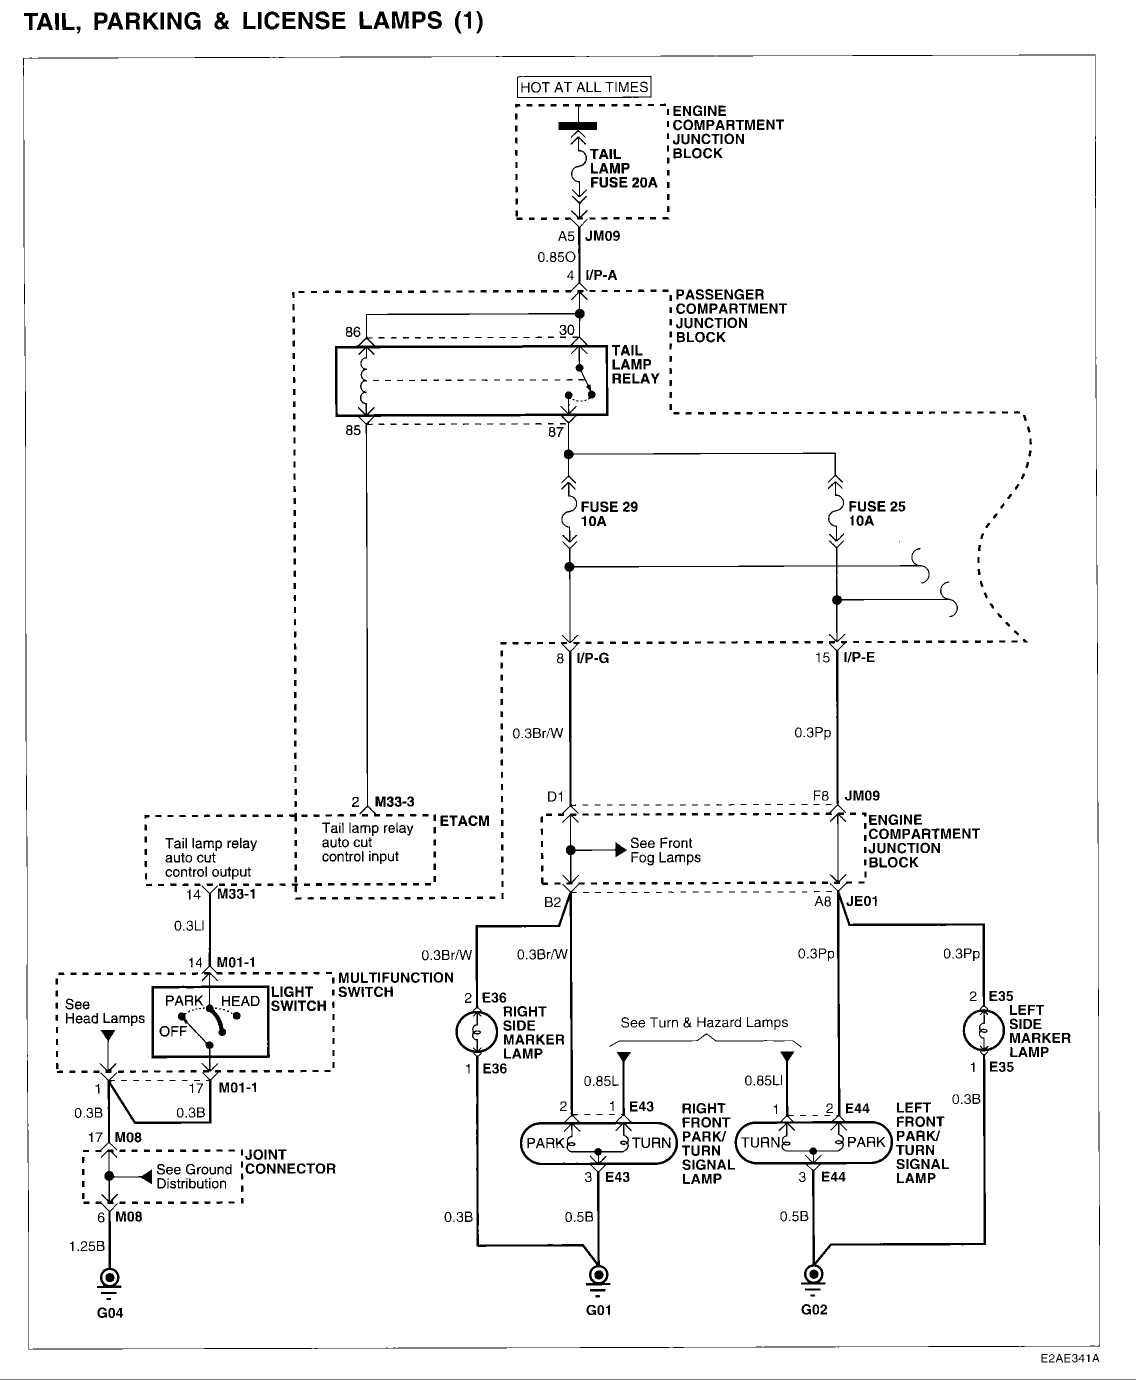 2003 hyundai sonata radio wiring diagram Collection-2009 Hyundai sonata Fuse Box Diagram Inspirational sophisticated Hyundai sonata Wiring Diagram Image 14-j